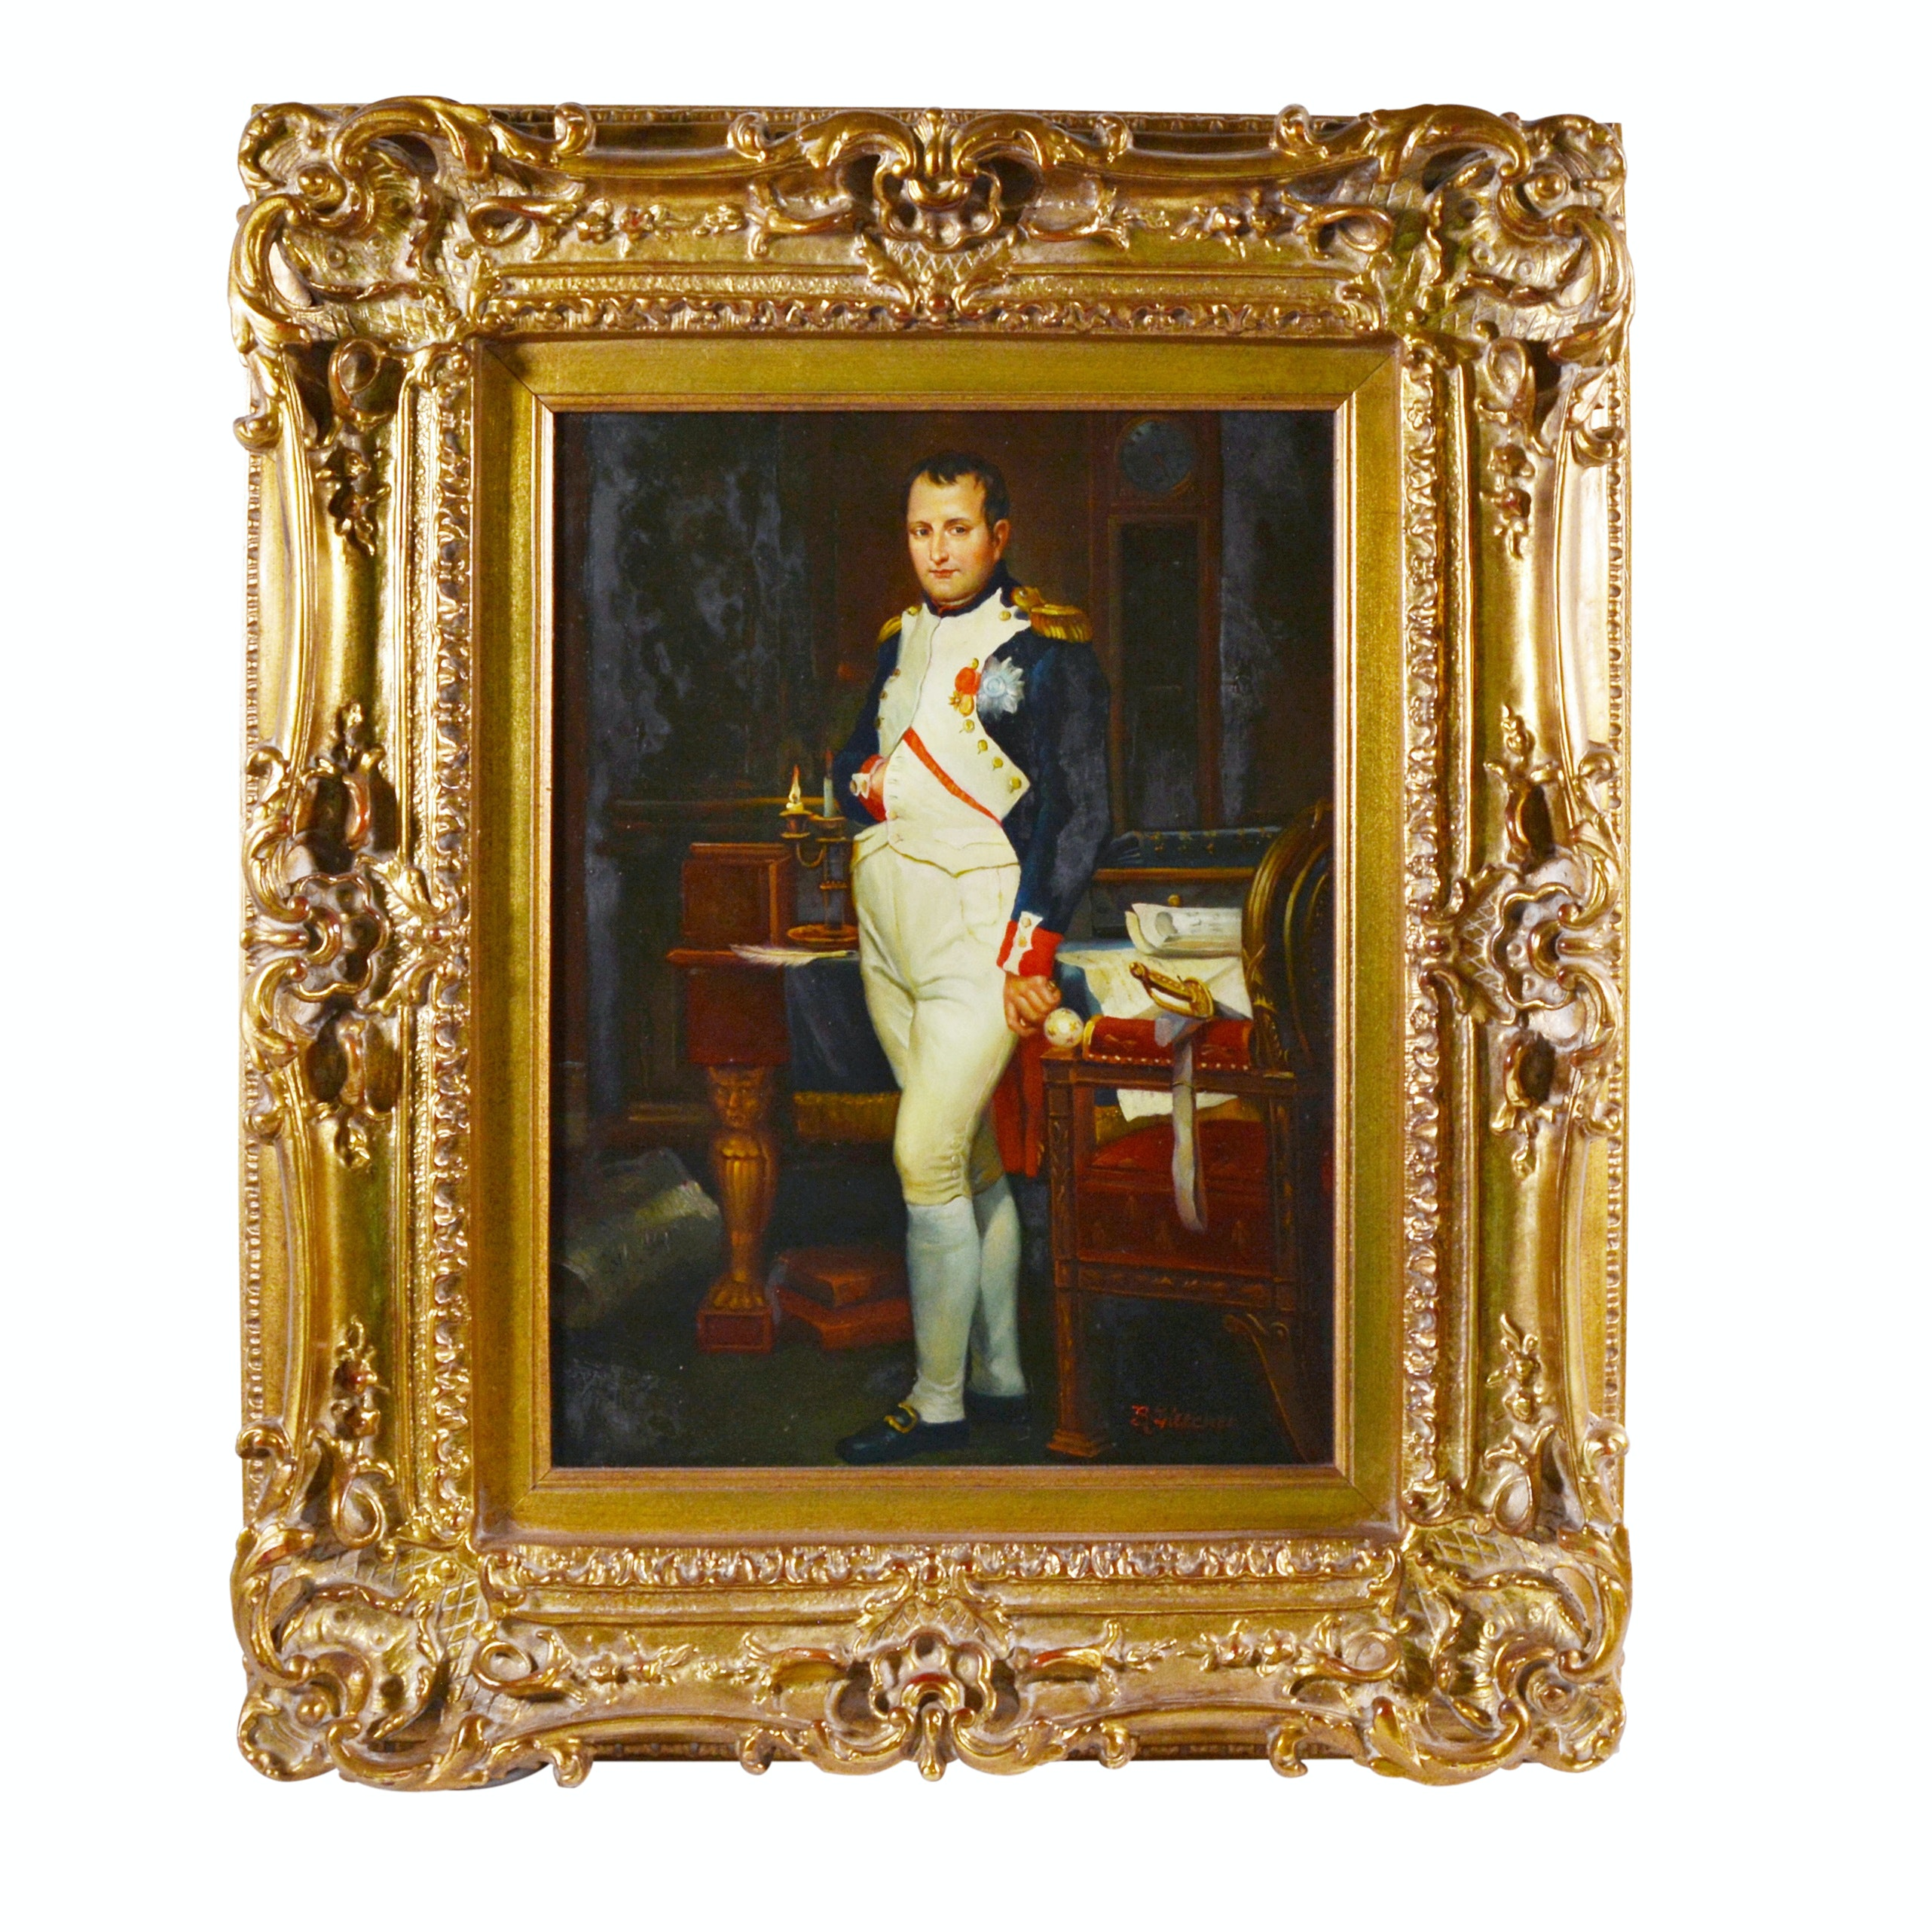 Reproduction Painting of Napoleon After Jacques-Louis David by B. Fletcher